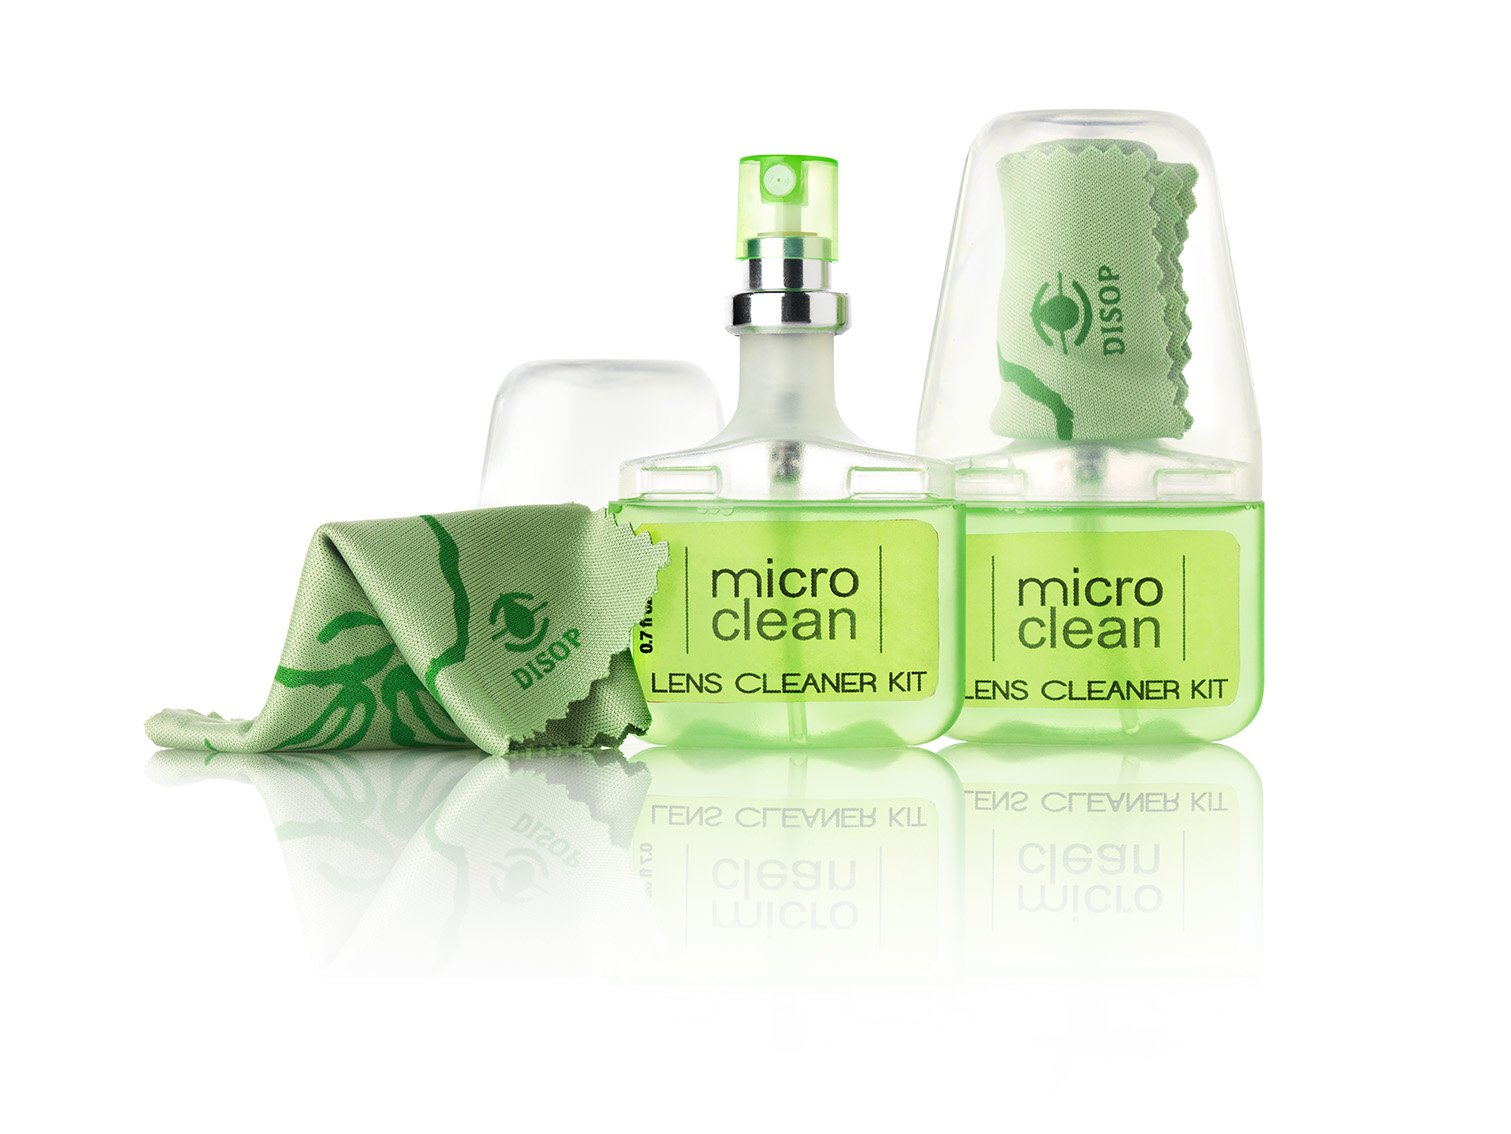 Eyeglass Cleaner : Lens Cleaning Kit, Pack of 2 Spray Bottles (Pocket Size, 0.7 Fl. Oz.) with Microfiber Cloth, Ammonia & Alcohol Free, Apple Scented, Biodegradable, Made in Spain by Micro Clean